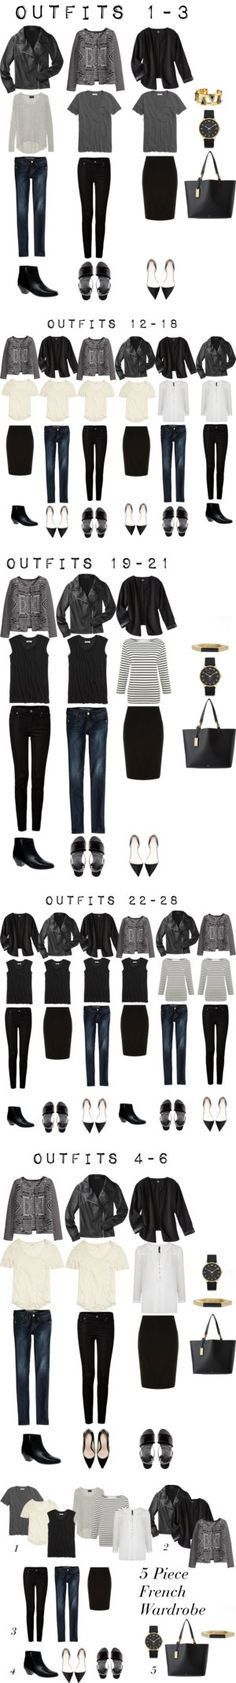 5 Item French Wardrobe by designismymuse on Polyvore featuring Madewell, Lauren Ralph Lauren, ASOS, American Eagle Outfitters, 7 For All Mankind, Dorothy Perkins, Mossimo, Zara, H&M and Line